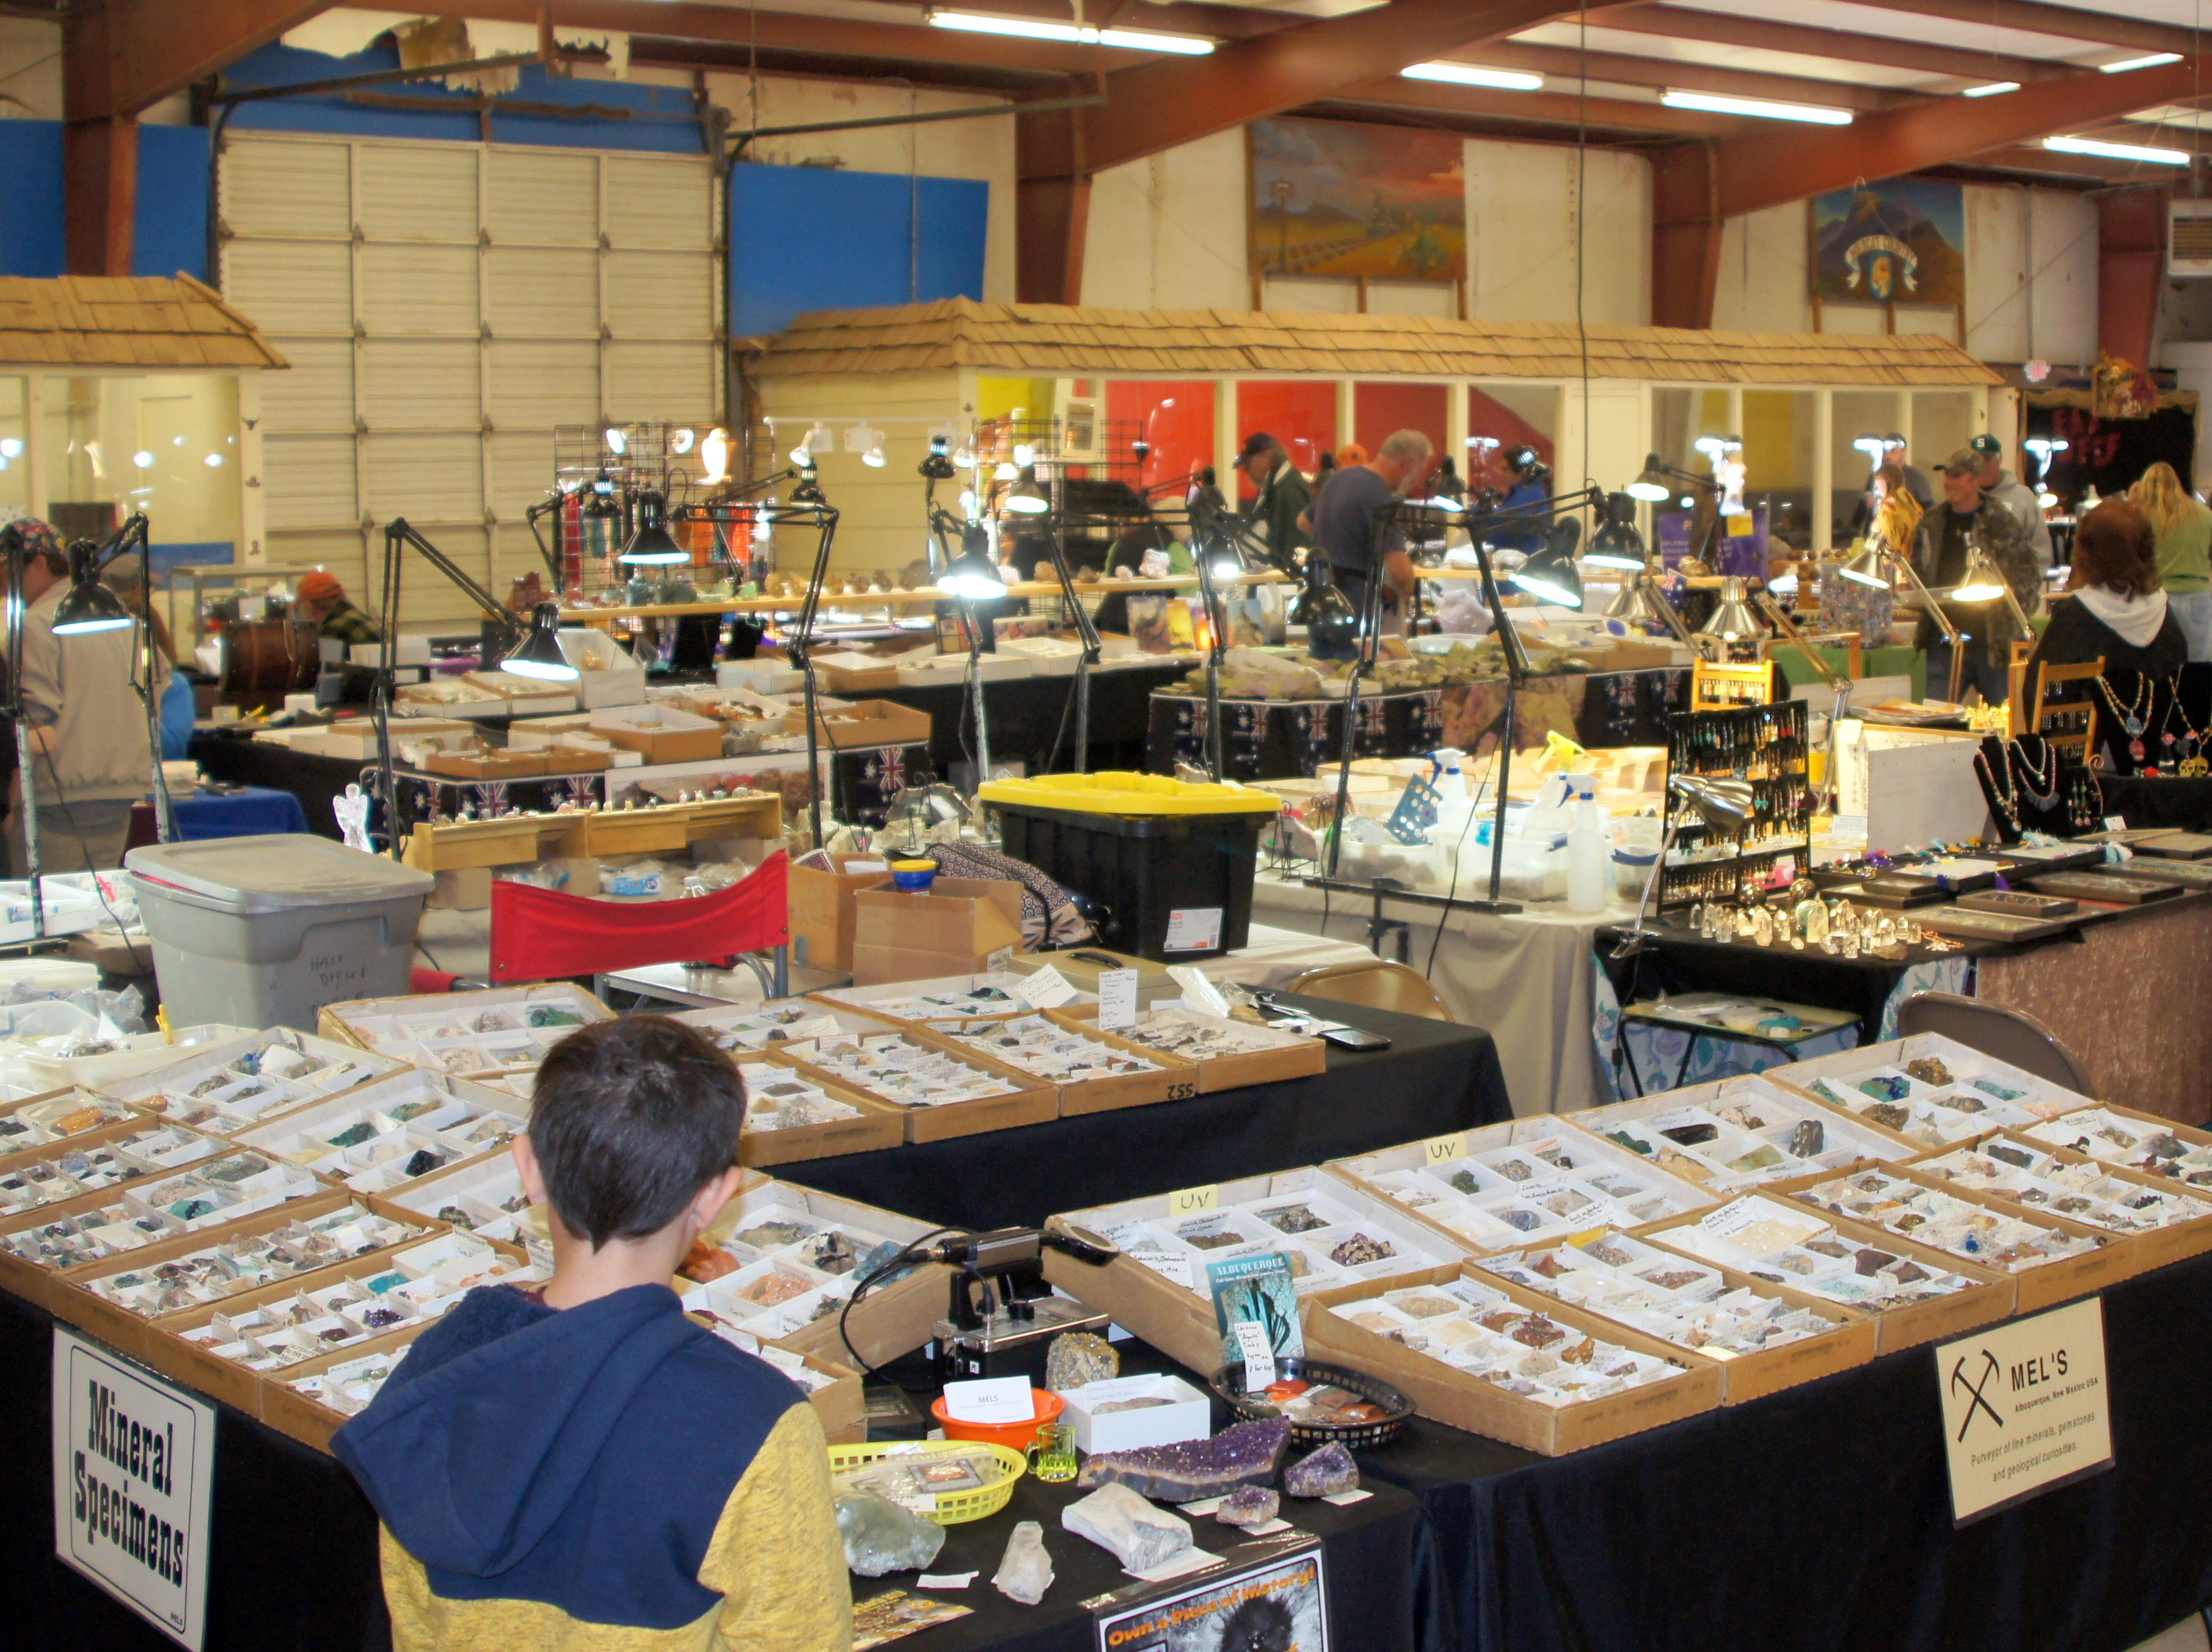 The fair building were packed on Sunday - the final day of the 54th annual Rockhound Roundup in Deming, NM.